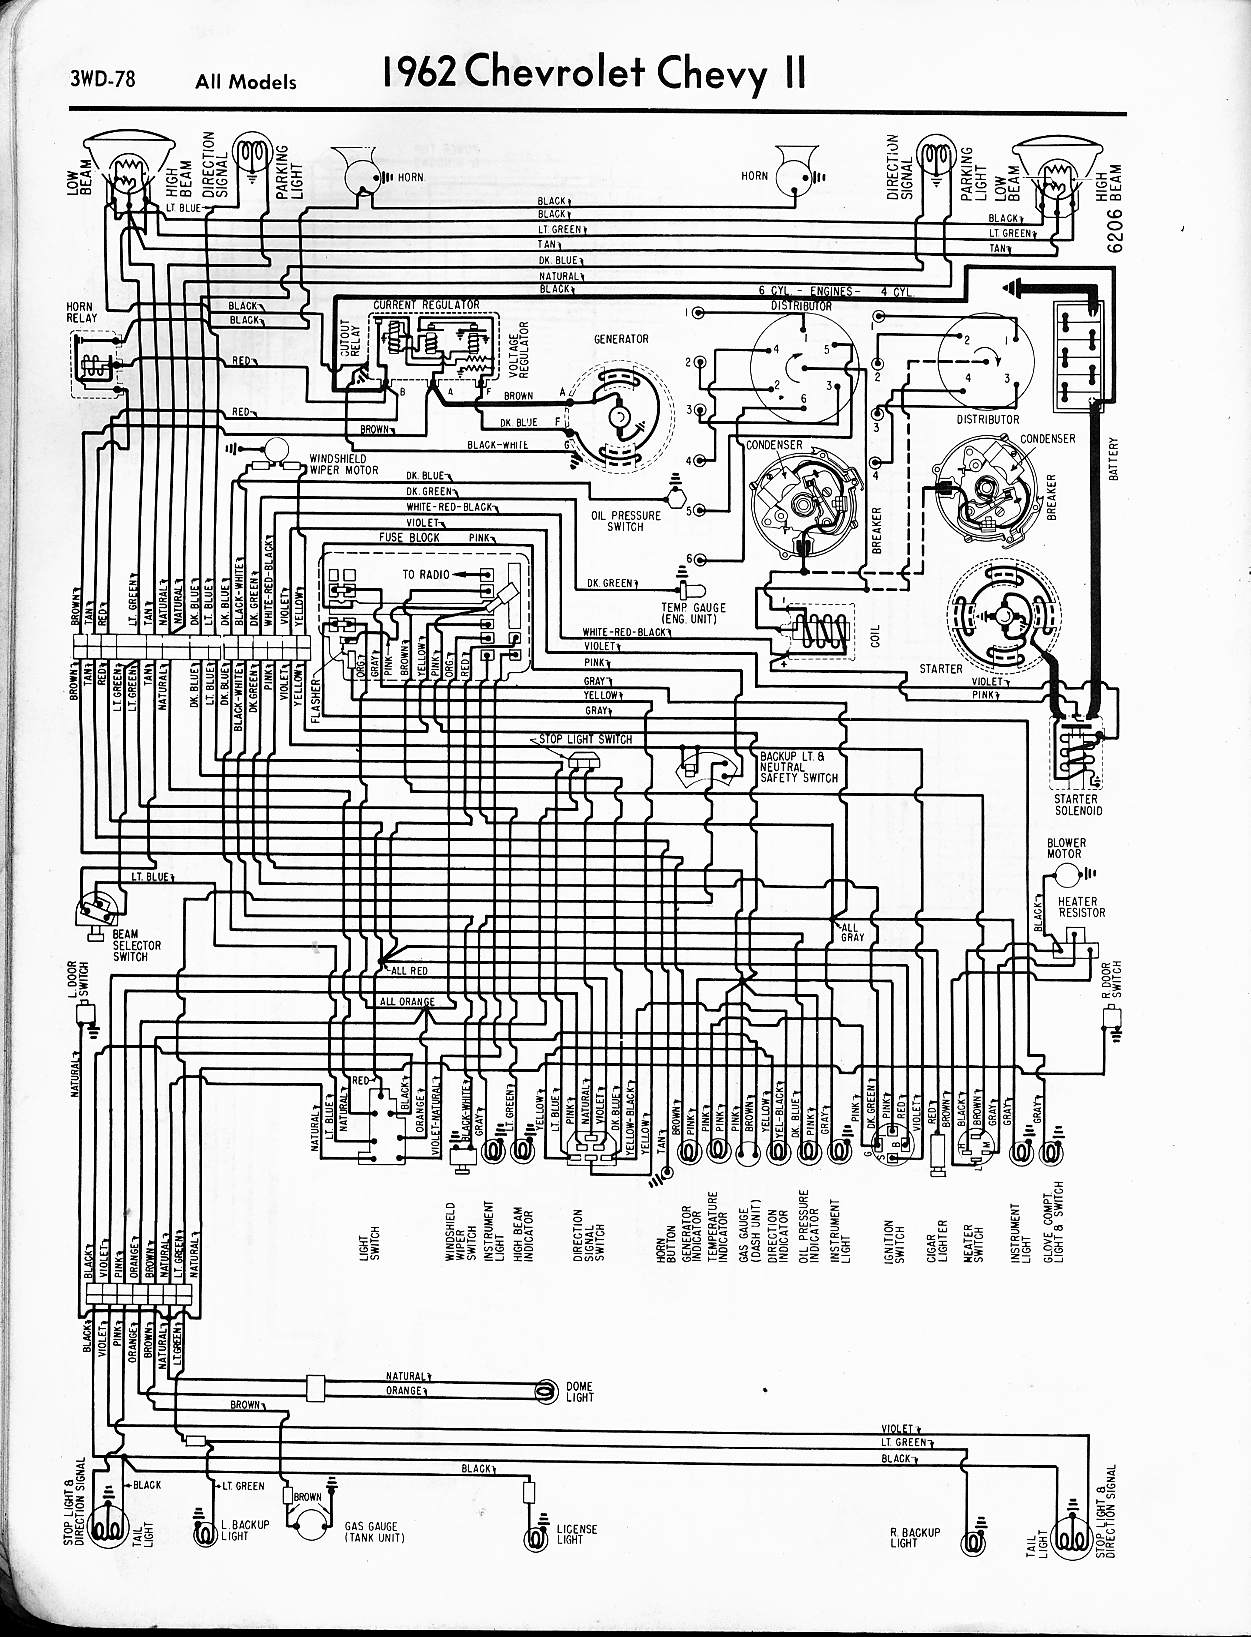 MWireChev62_3WD 078 57 65 chevy wiring diagrams  at crackthecode.co